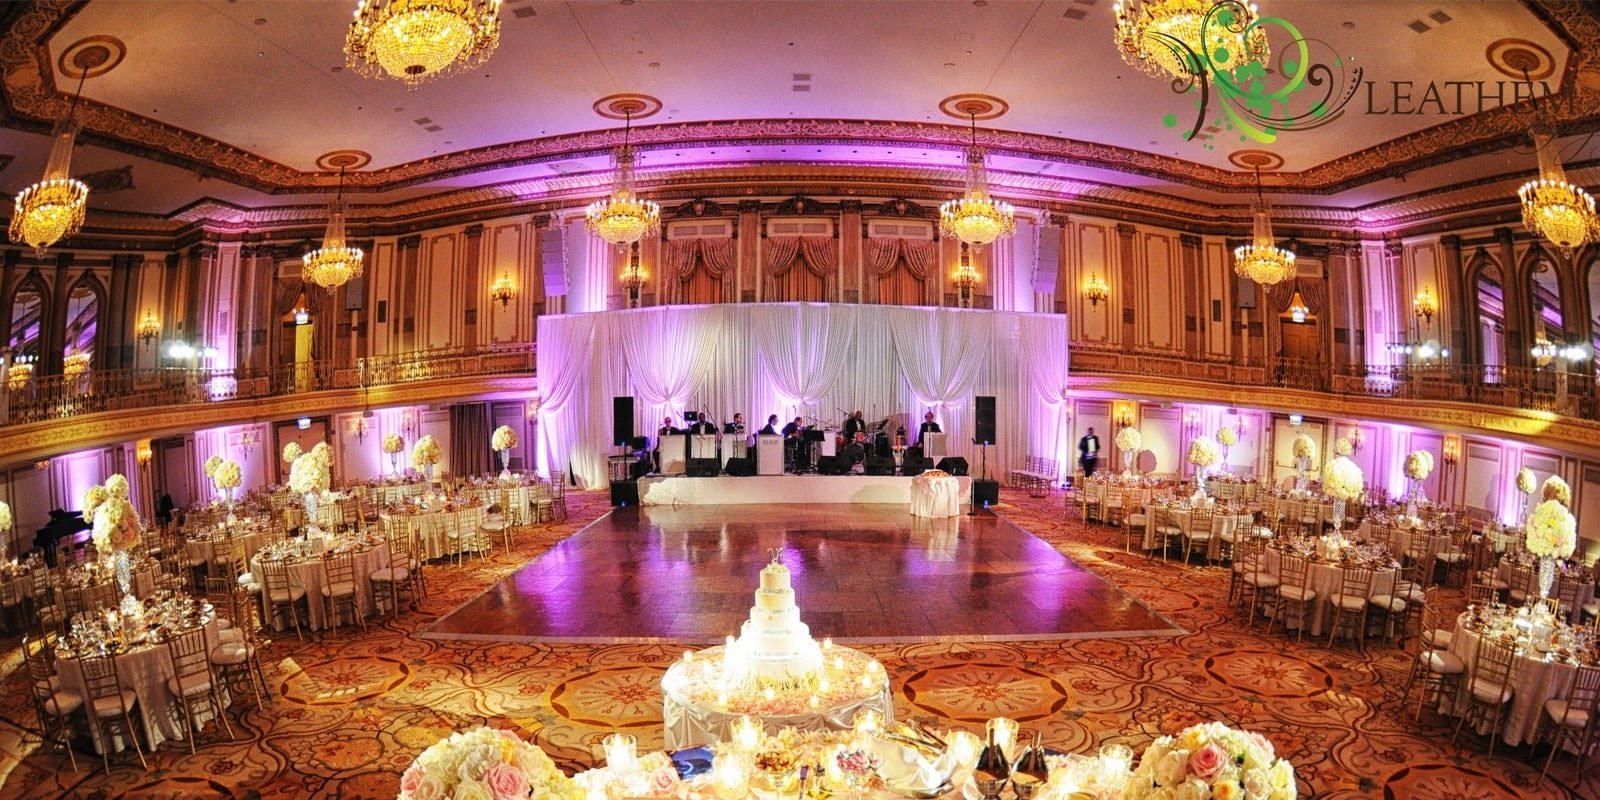 cool wedding reception ideas gallery decoration 50th anniversary